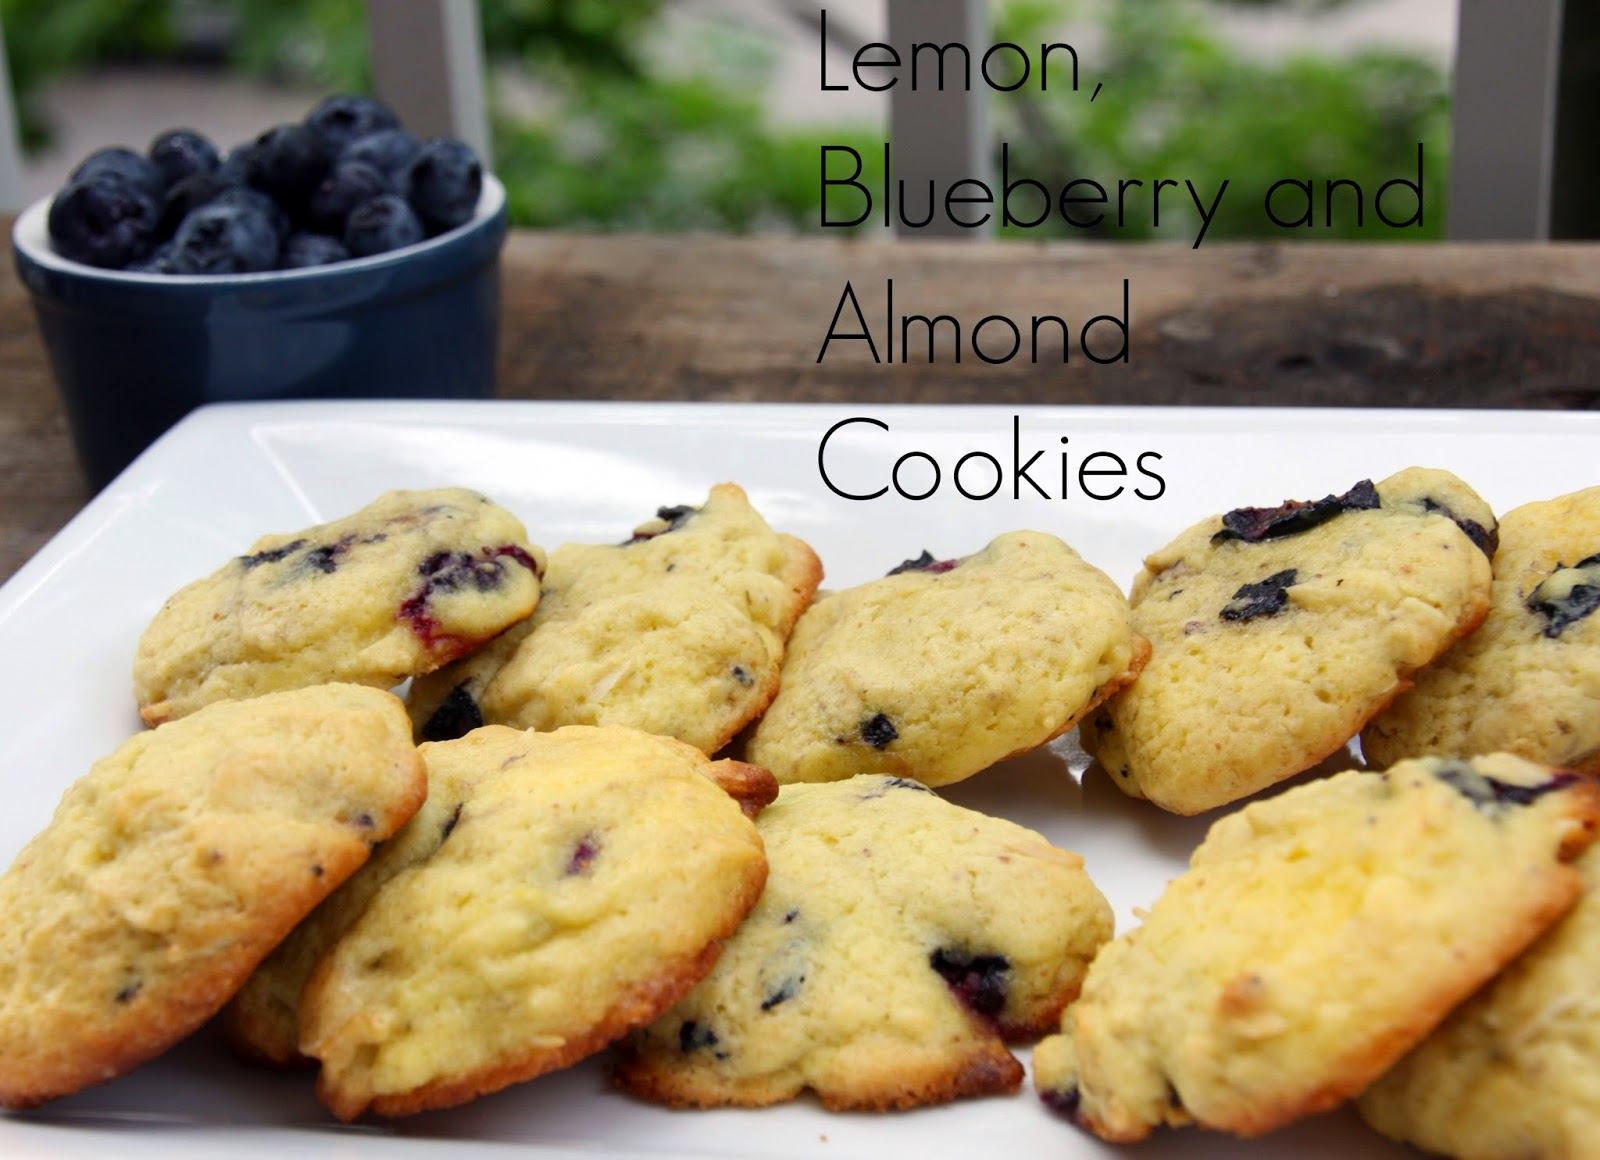 Lemon, blueberry and almond cookies